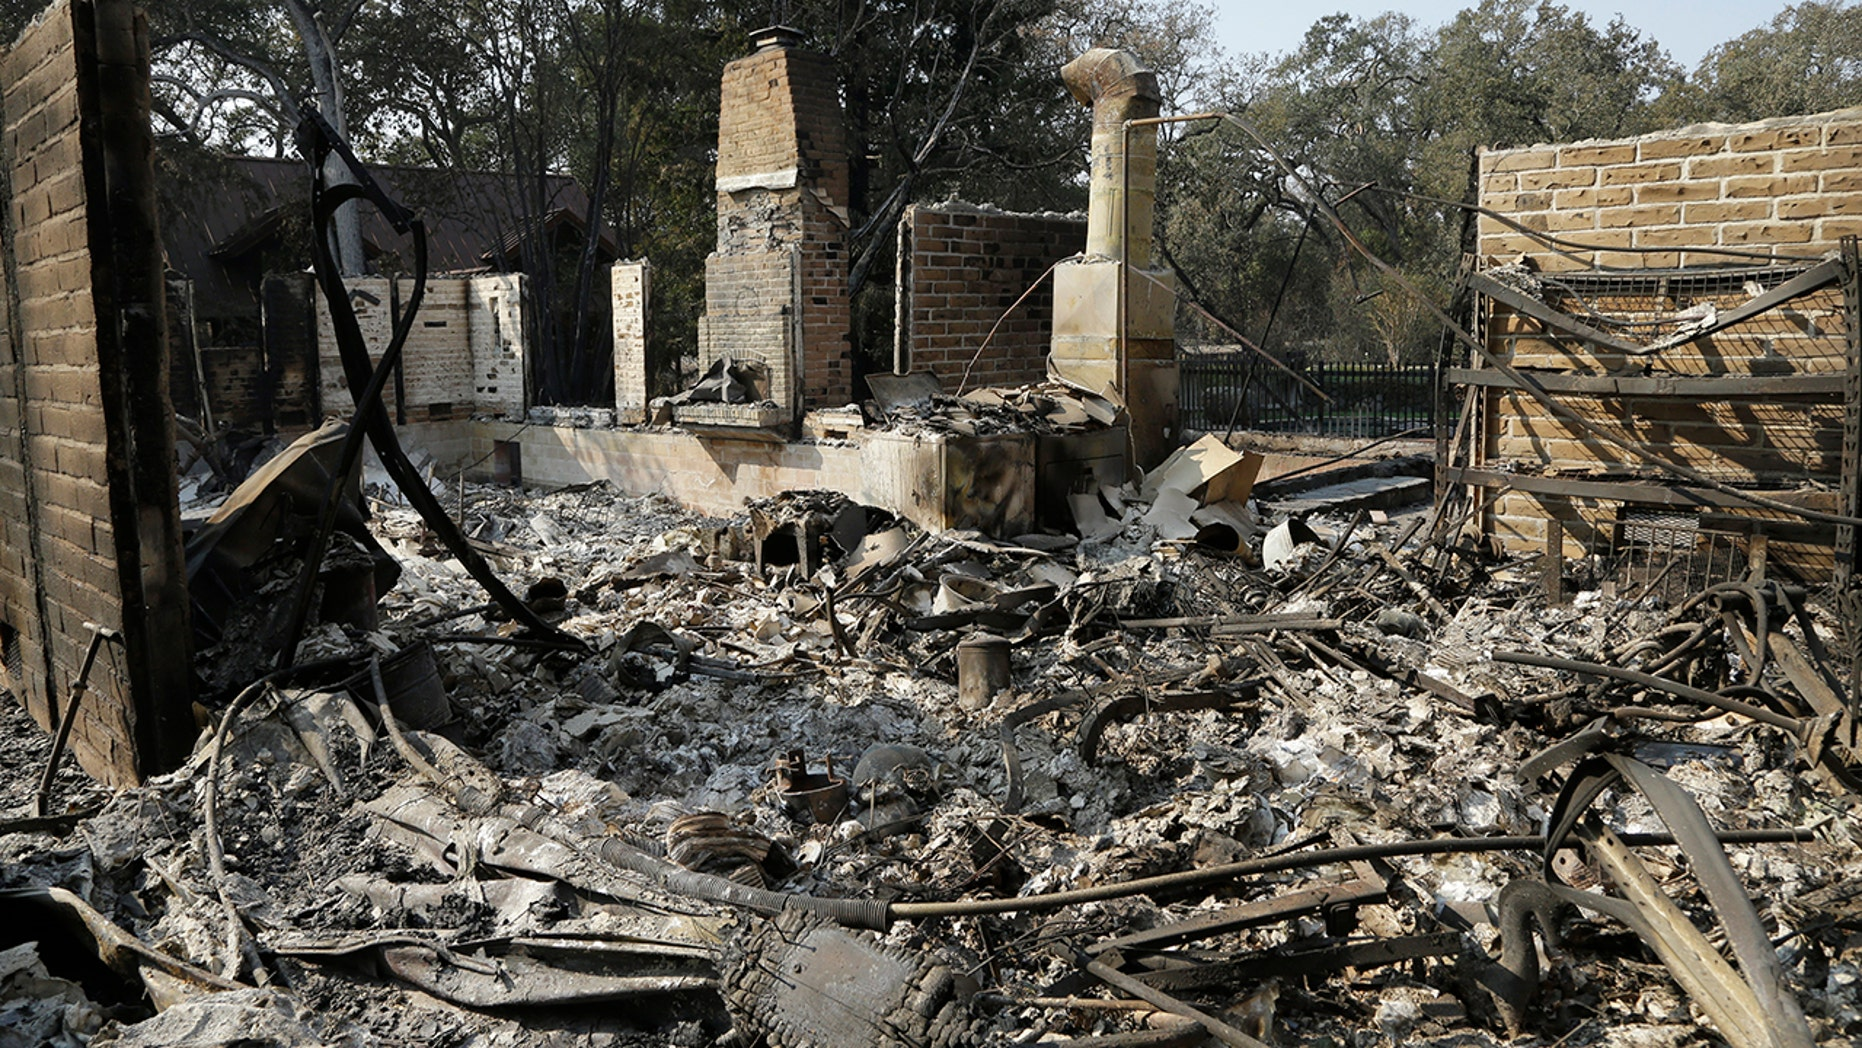 Remains of a home destroyed by wildfires seen Wednesday, Oct. 18, 2017, in Glen Ellen, Calif.